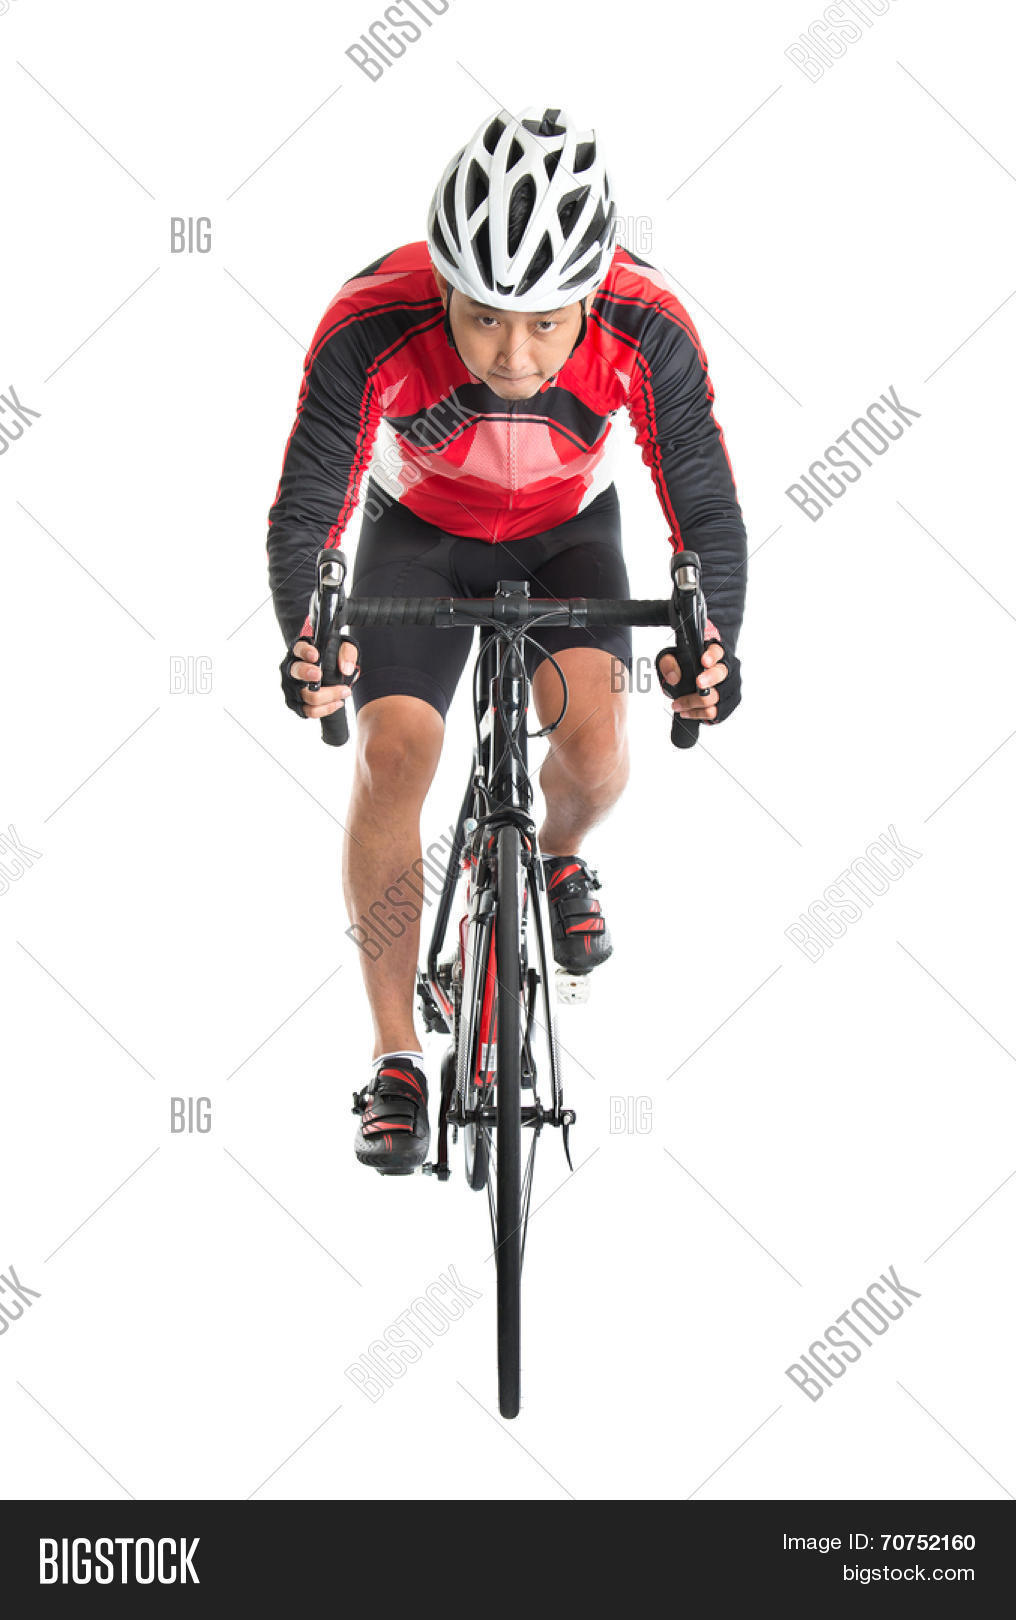 Asian male biker riding road bike, front view isolated on white background.